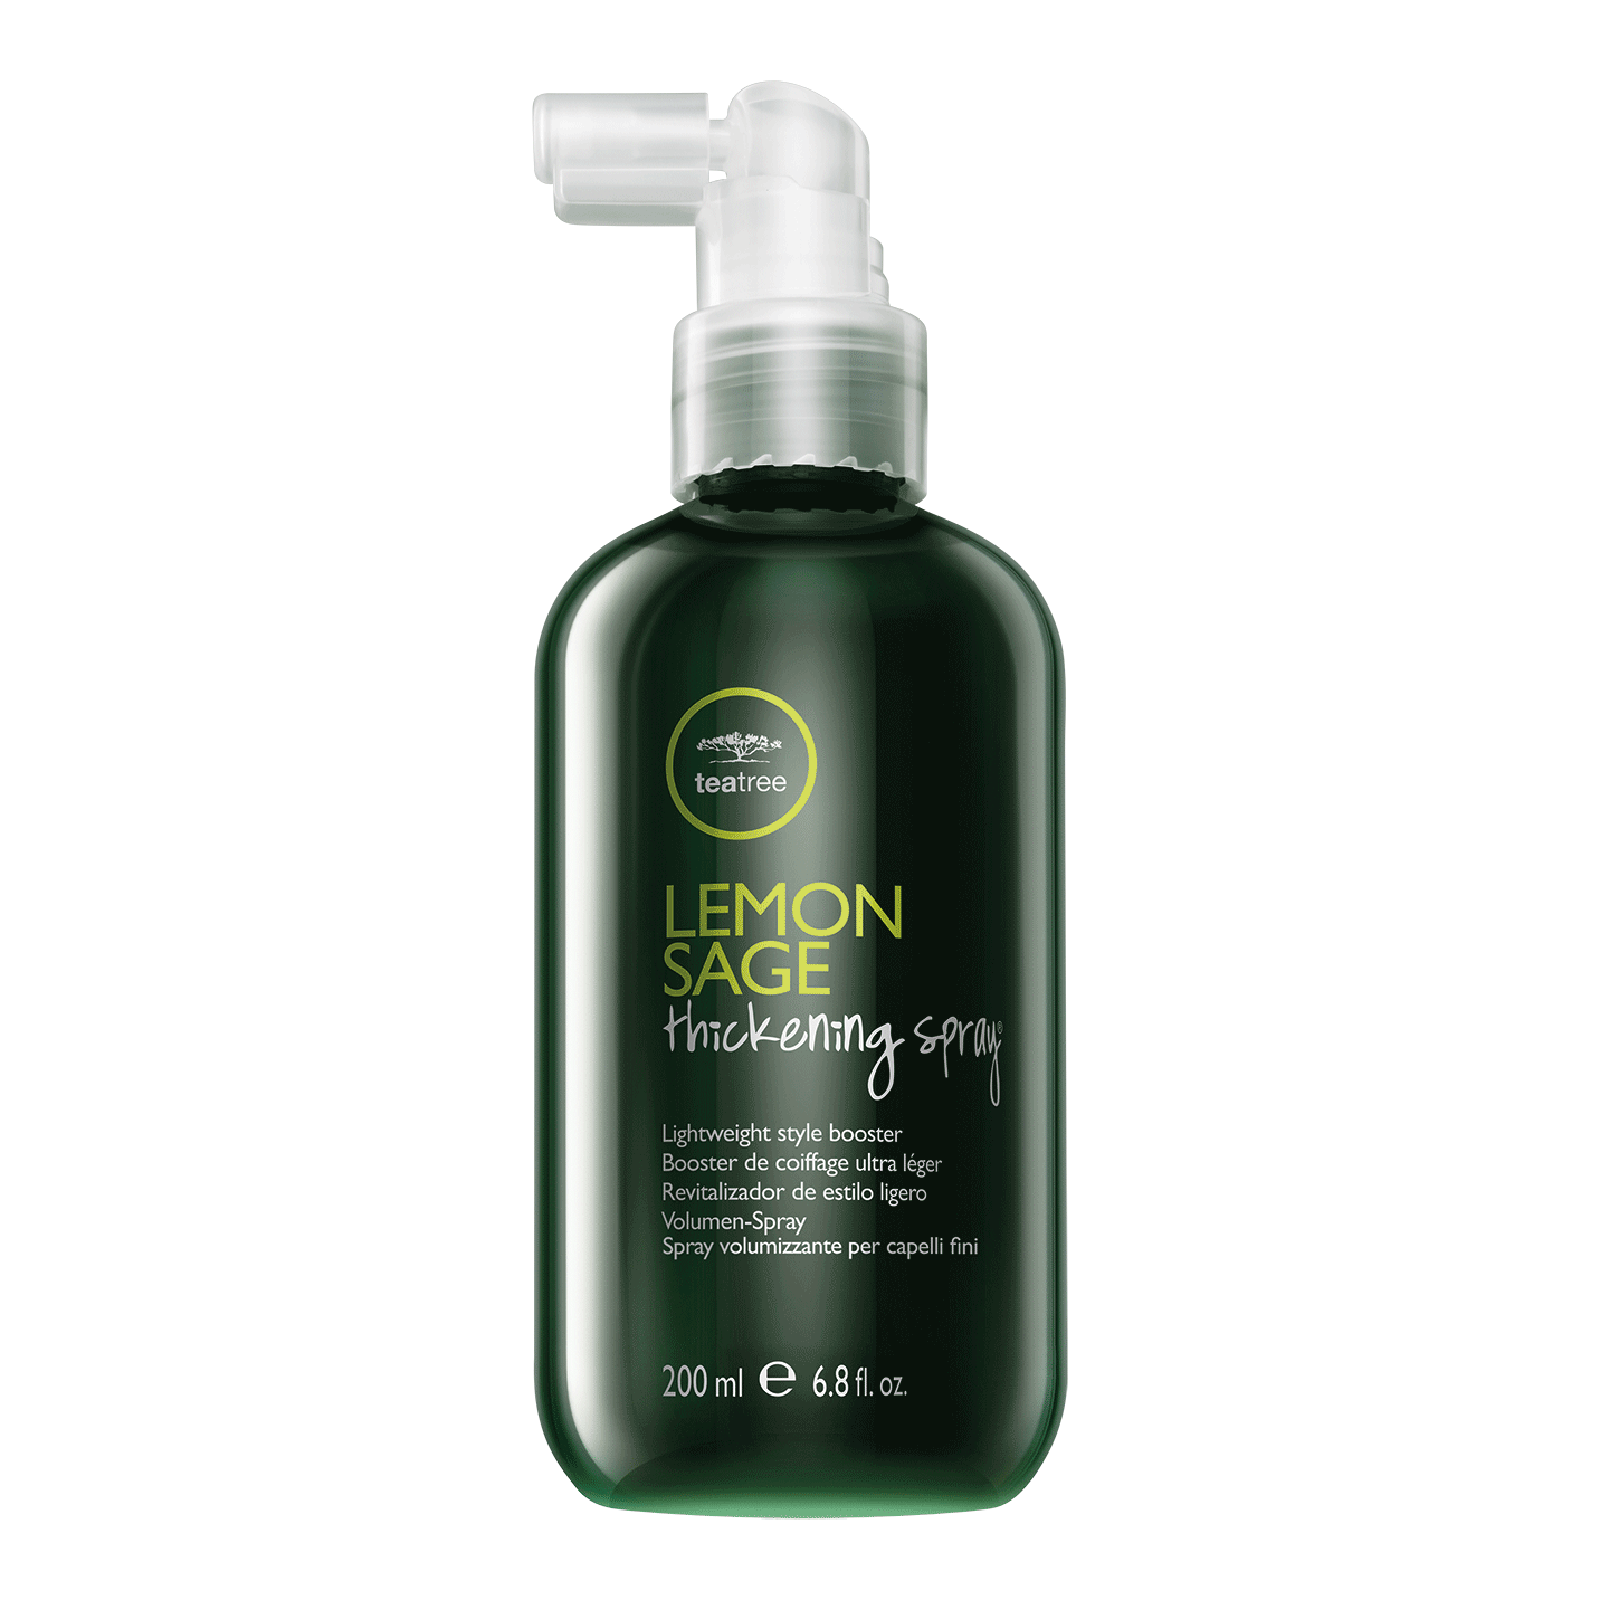 Tea Tree Lemon Sage Thickening Spray